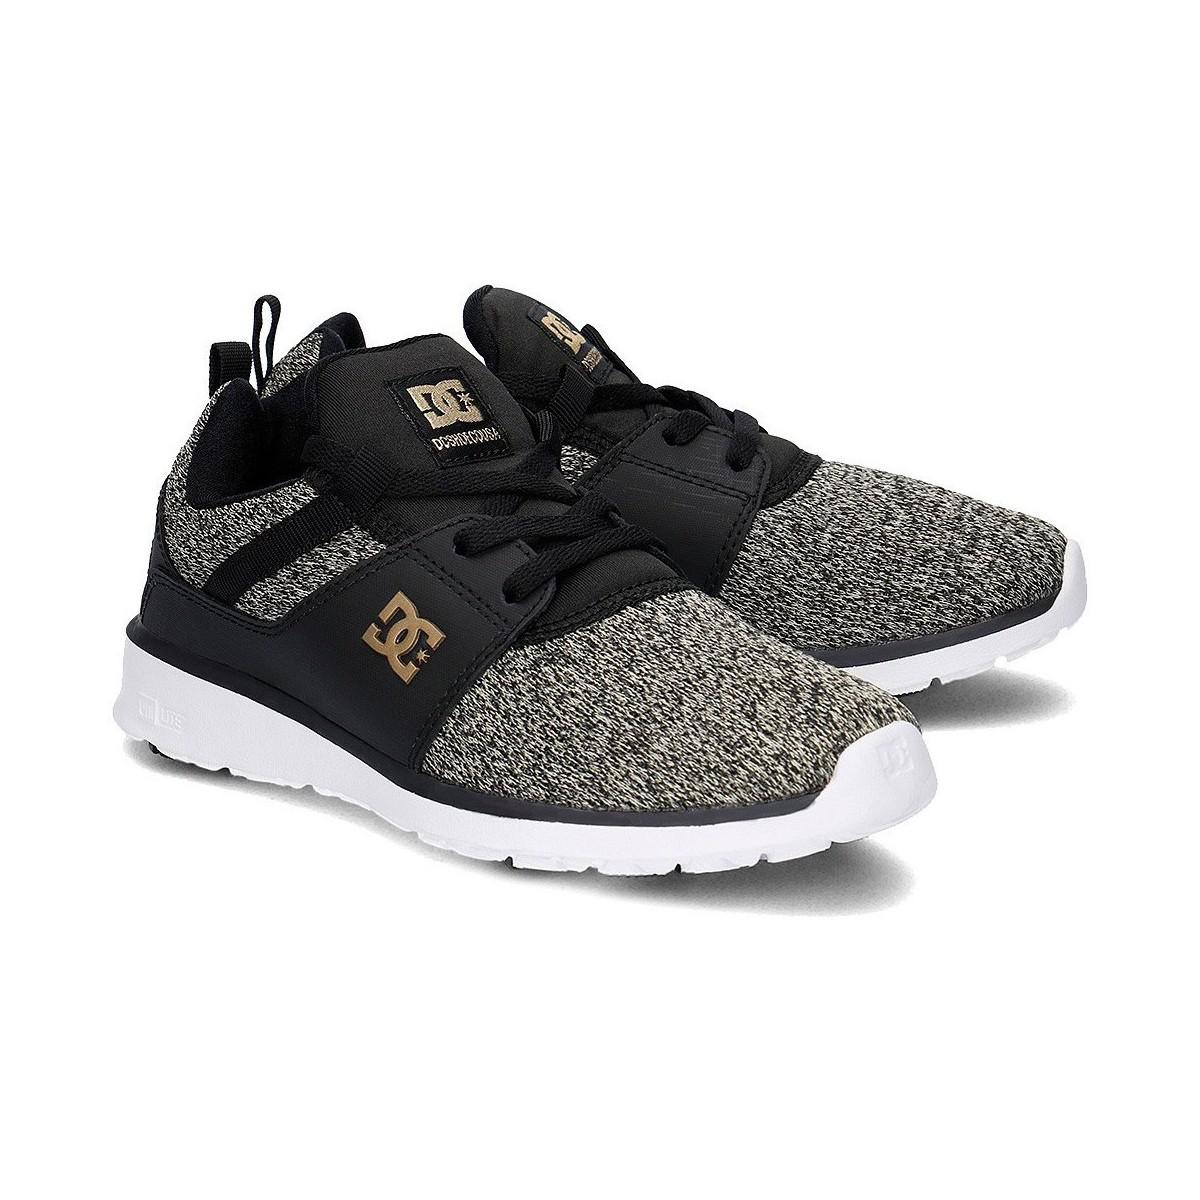 Dc Shoes Heathrow Women s Shoes (trainers) In Grey in Gray - Save ... cf903c26cf0